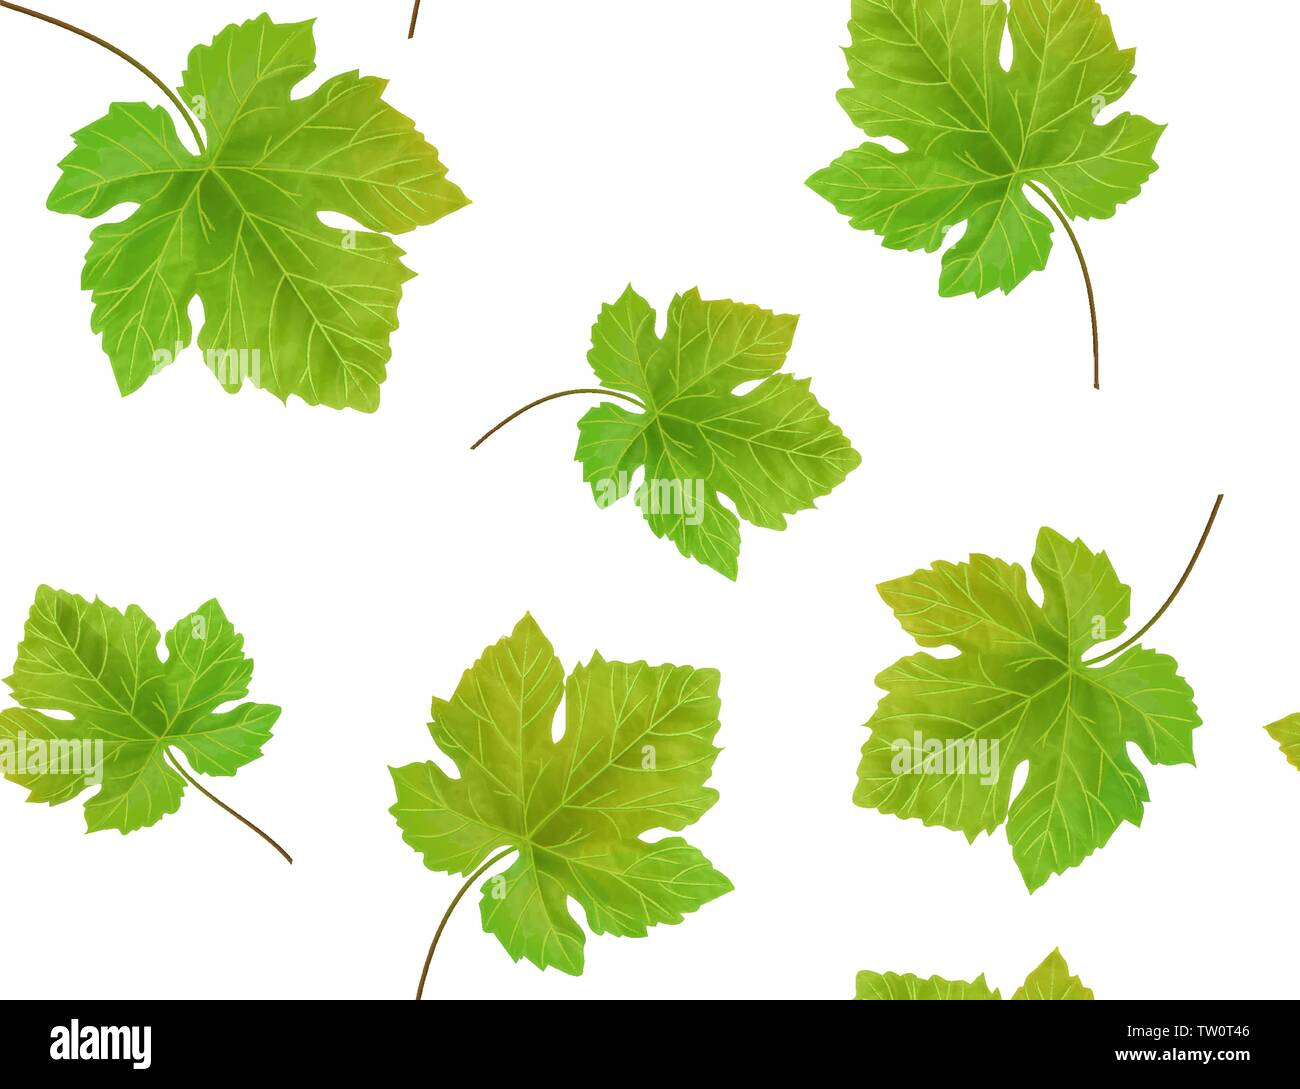 Seamless Background With Grape Leaves Vector Illustration Stock Vector Image Art Alamy